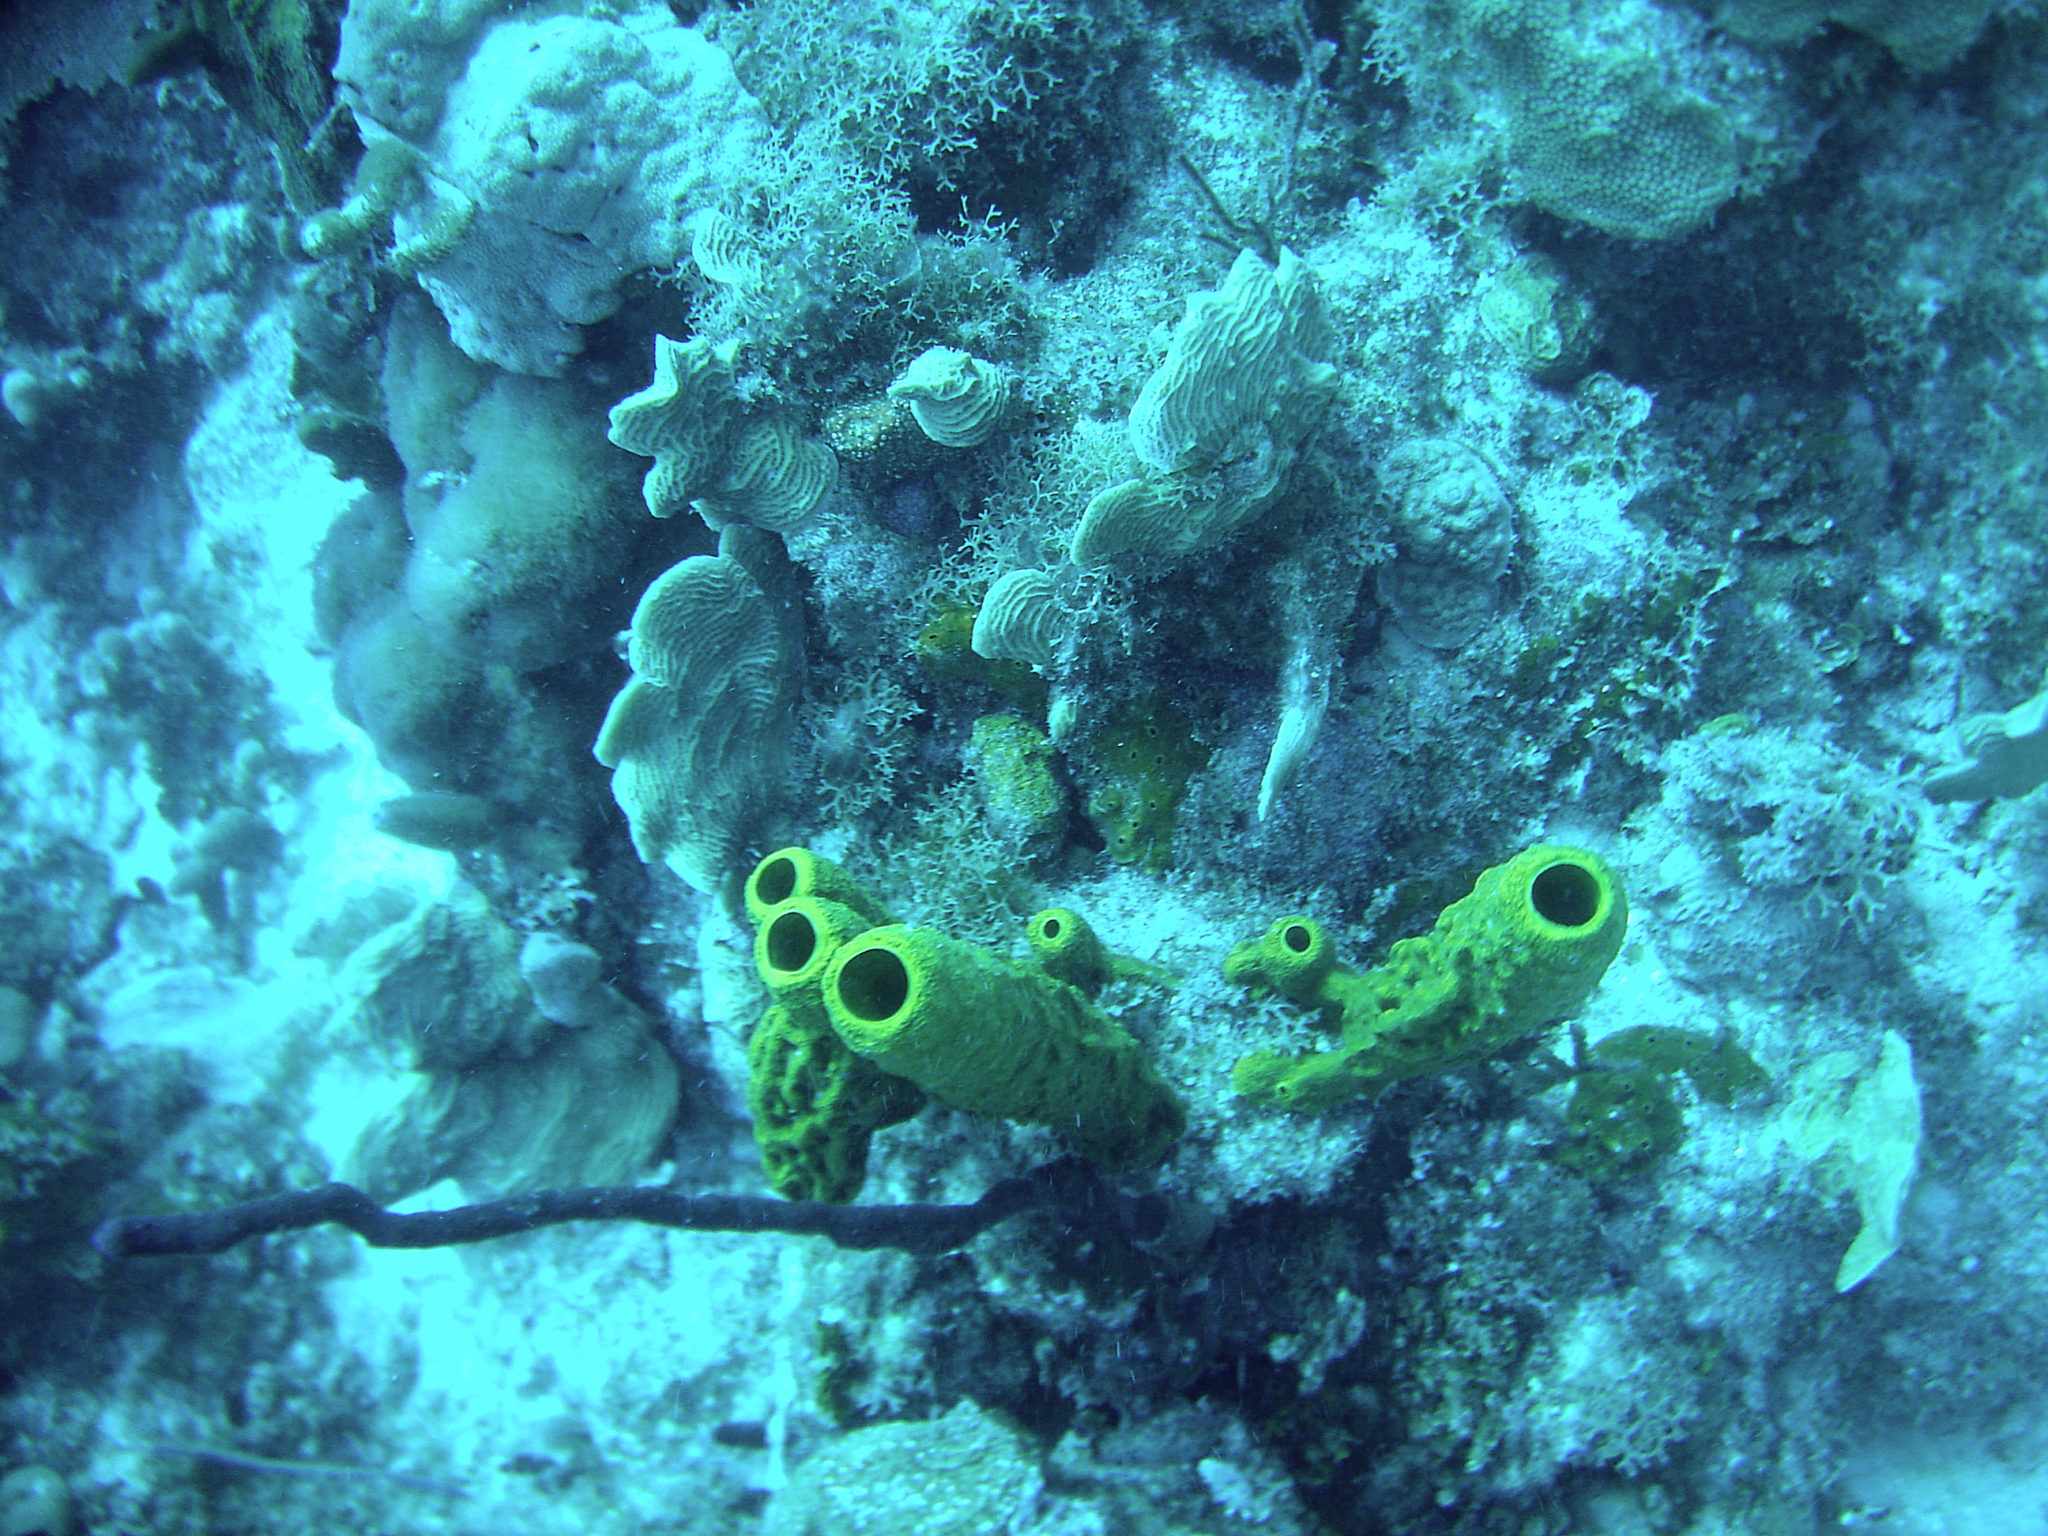 Republique_dominicaine_roadtrip_bayahibe_plongee_scubafun_coraux_dominicus_reef